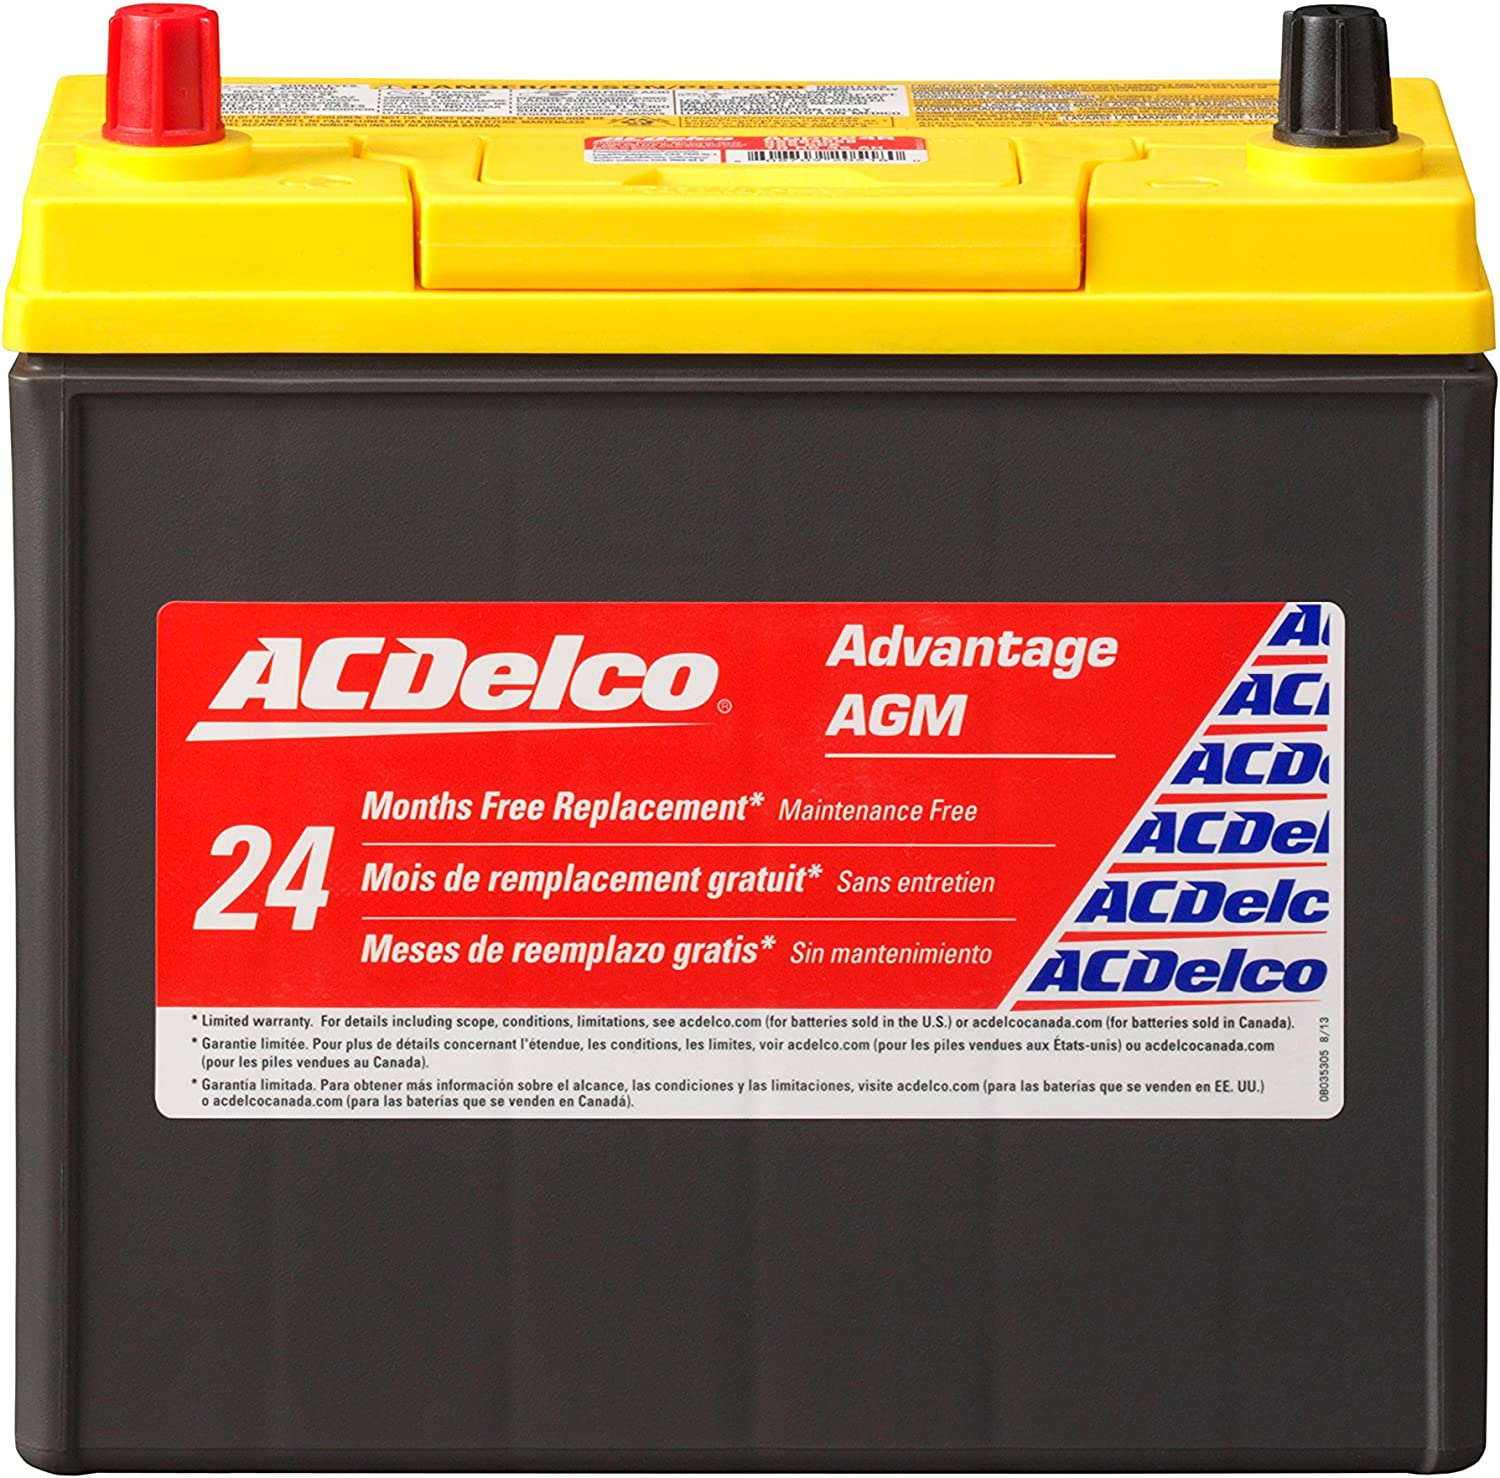 ACDelco Advantage AGM Automotive Battery